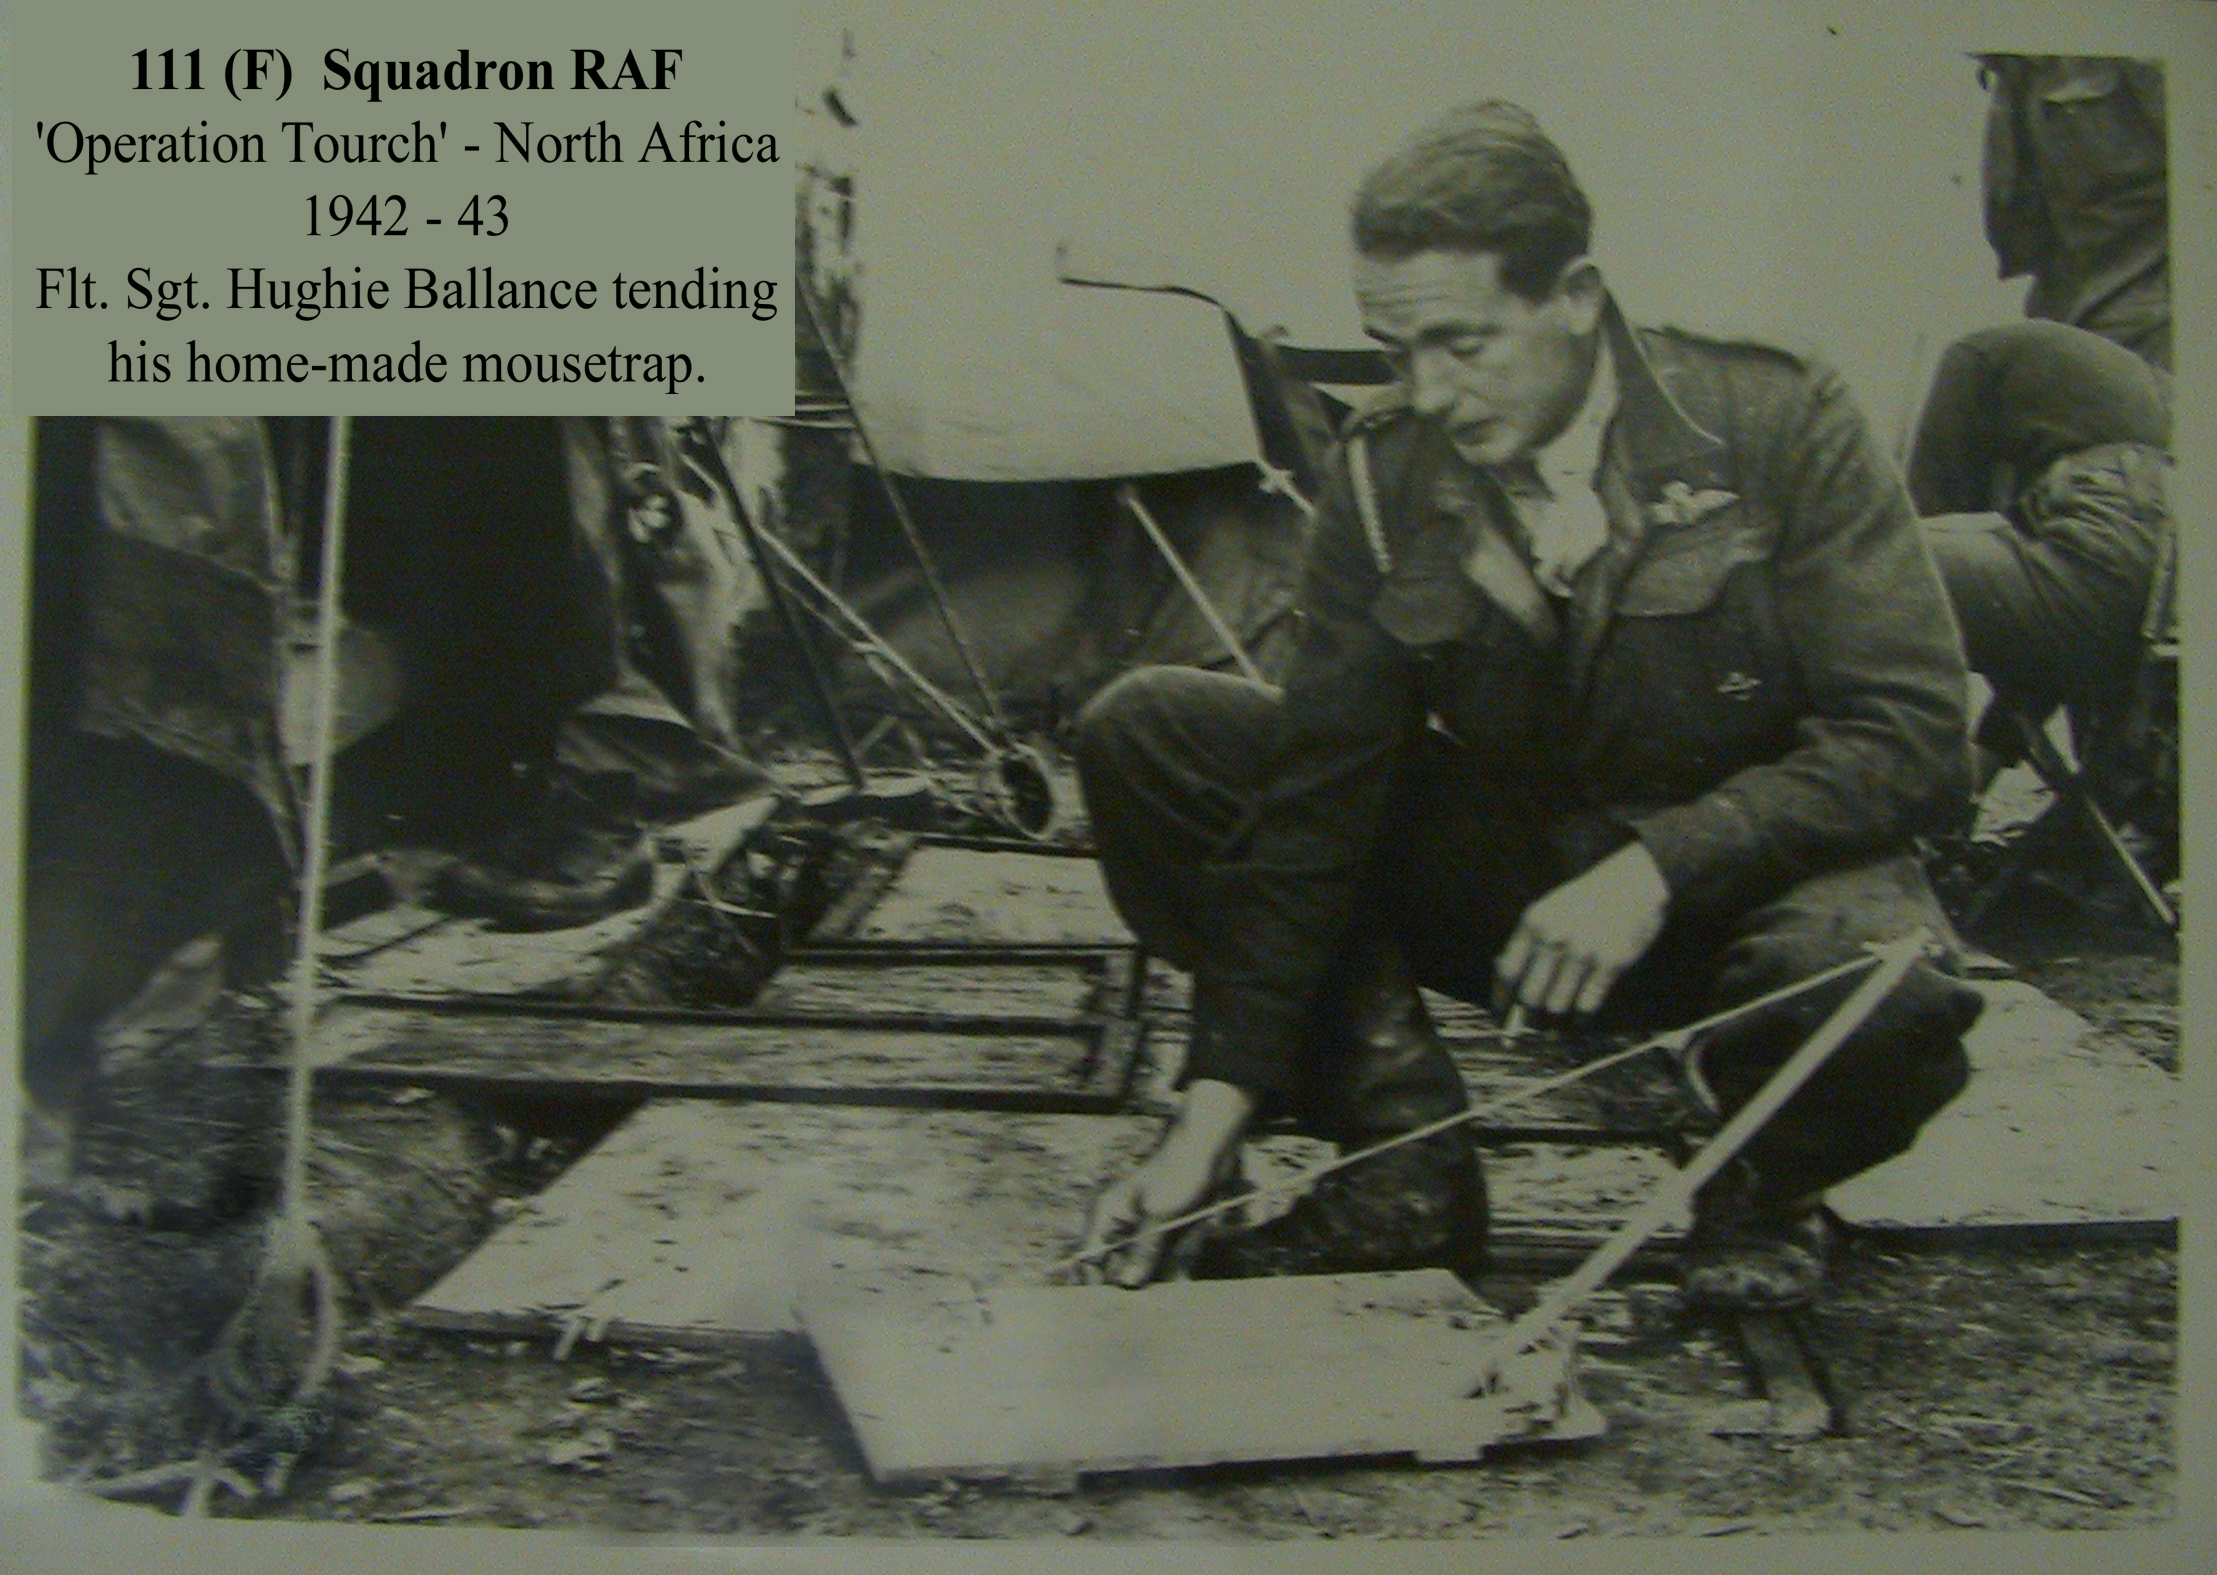 Hugh Ballance and his lethal 'Rat-Trap'.